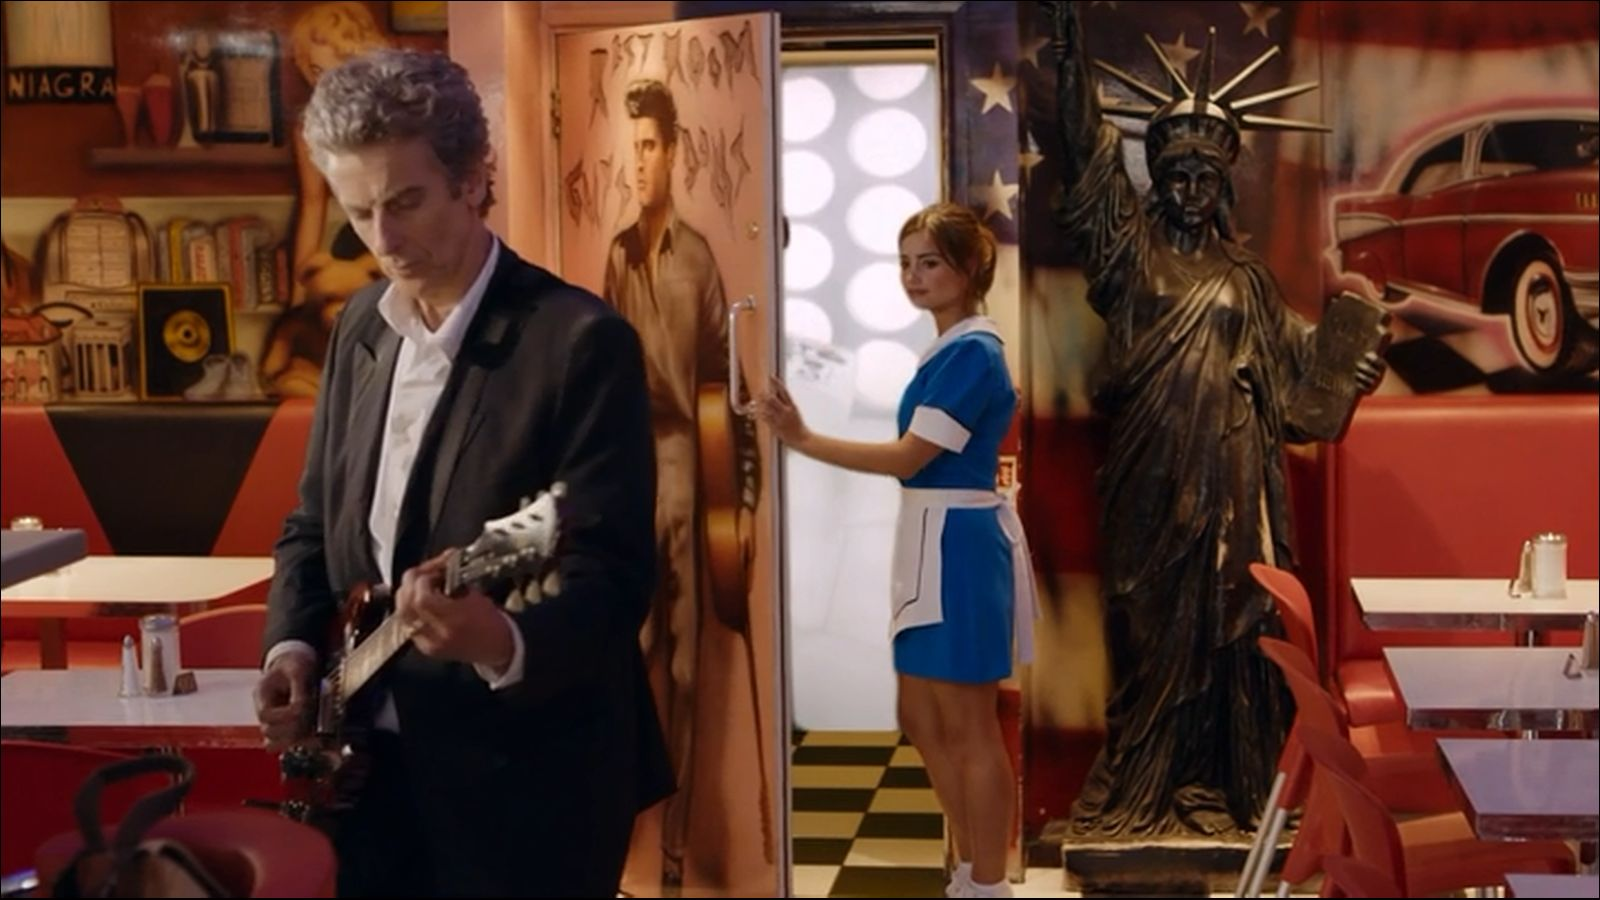 doctor who diner inconsistencies geoffgould net now the empty space next to the door has the statue of liberty at least the wall murals to the right of the restroom door remains the same in both diners